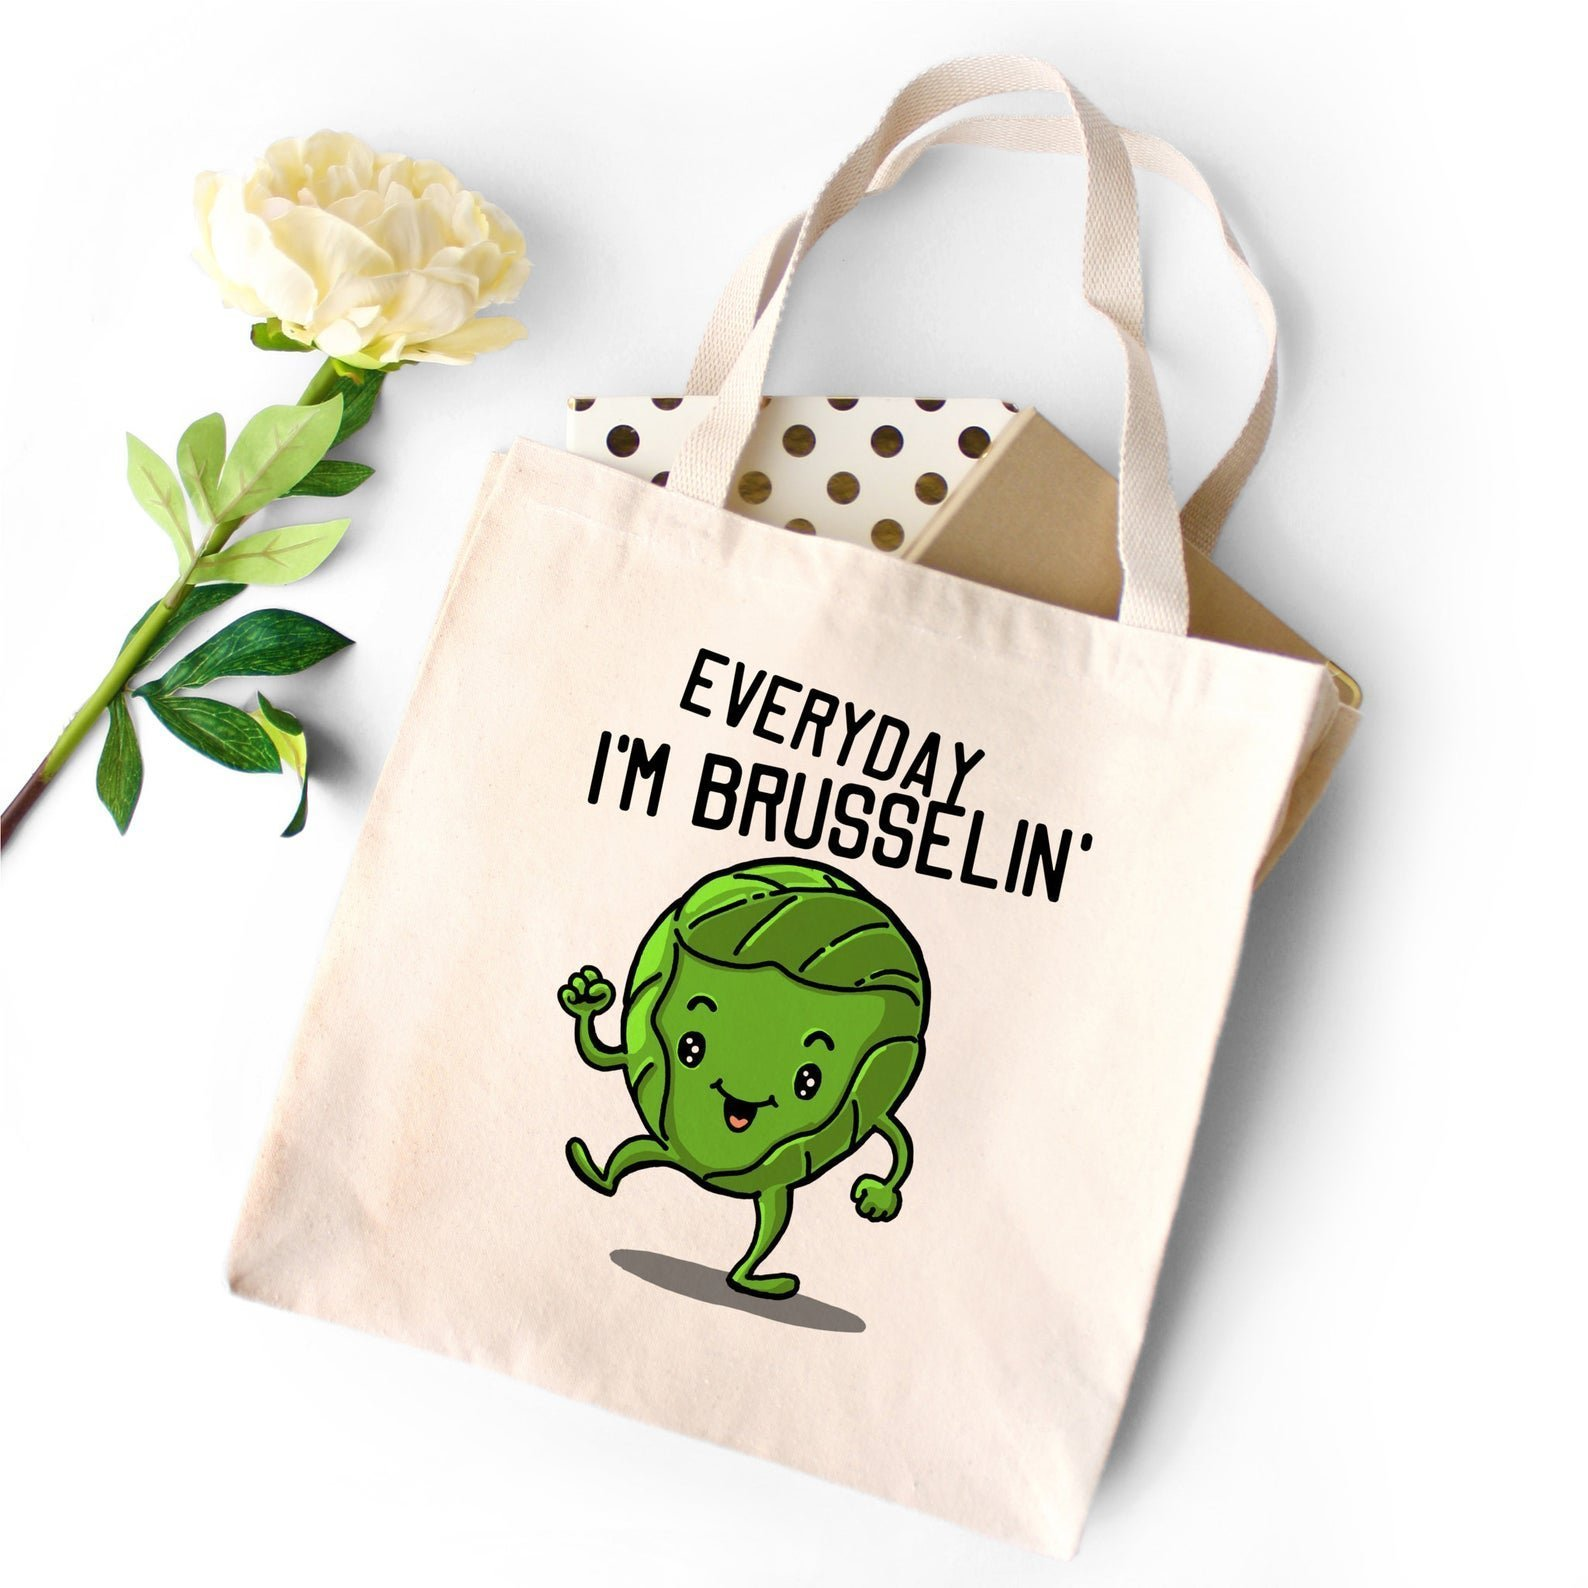 tote with image of brussel sprout that says everyday I'm brusselin